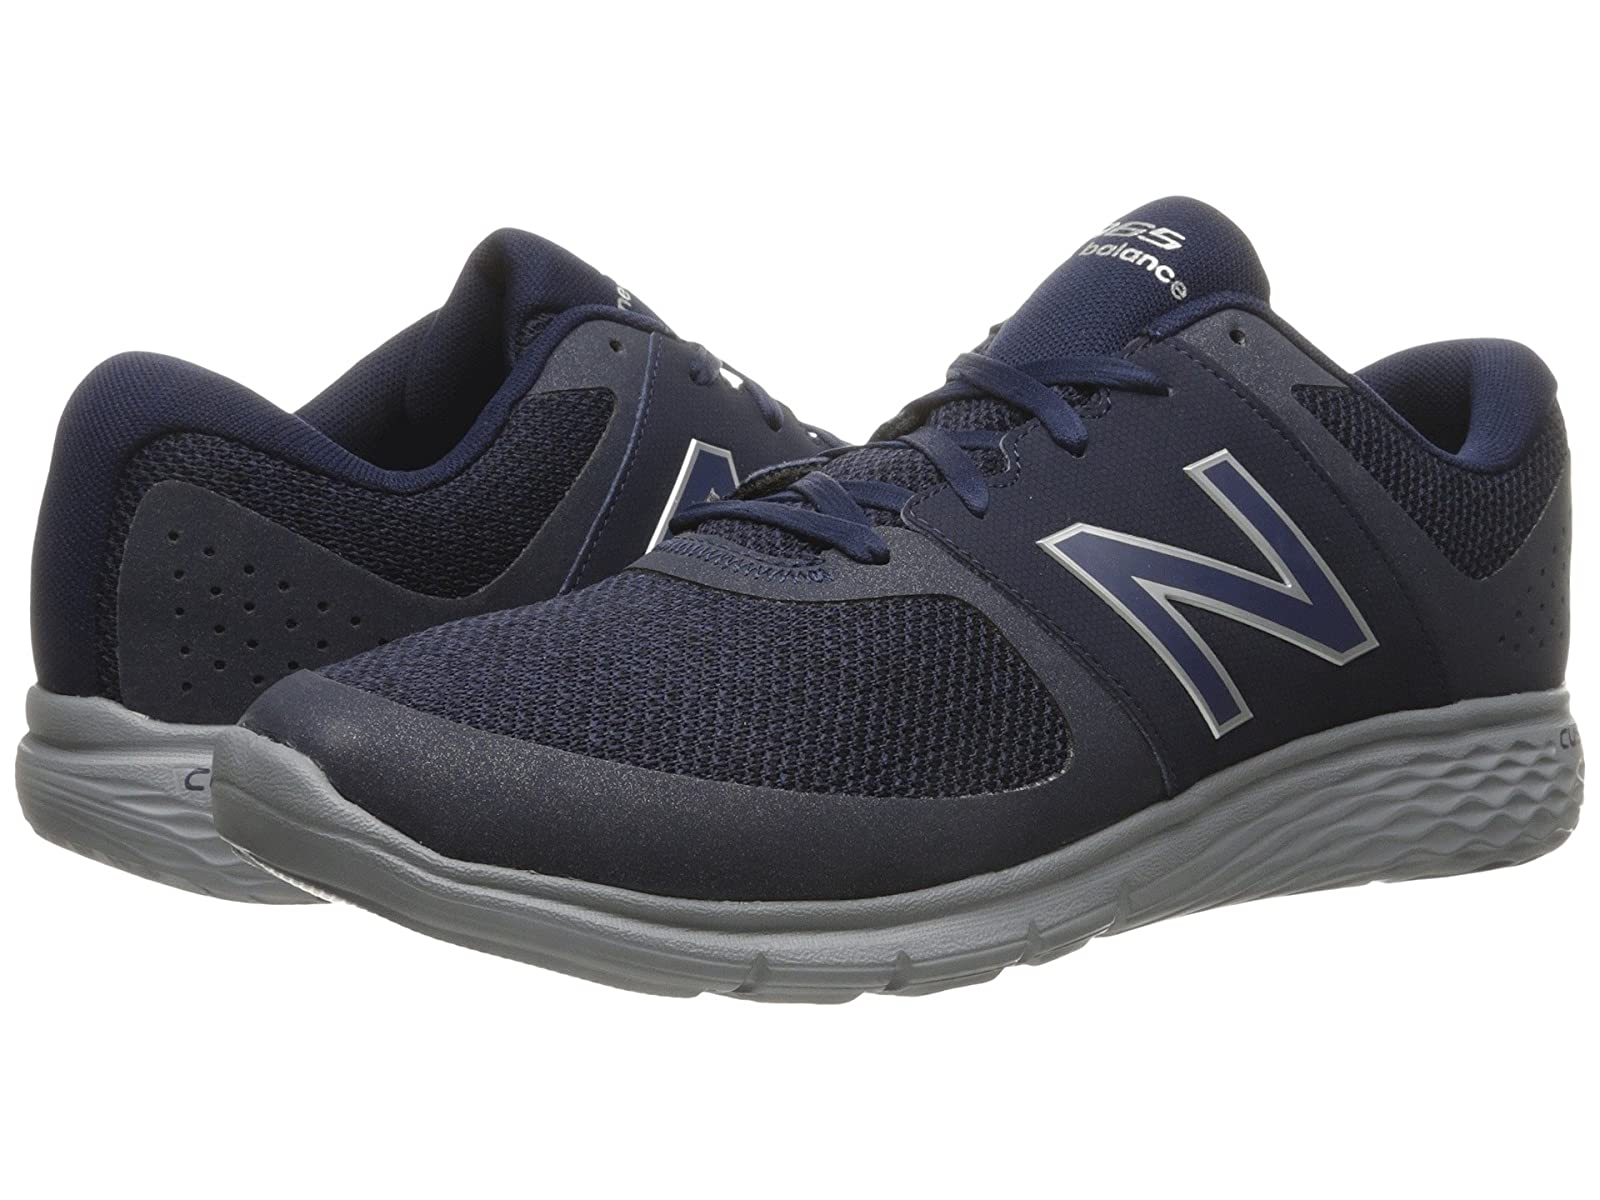 New Balance MA365v1Cheap and distinctive eye-catching shoes